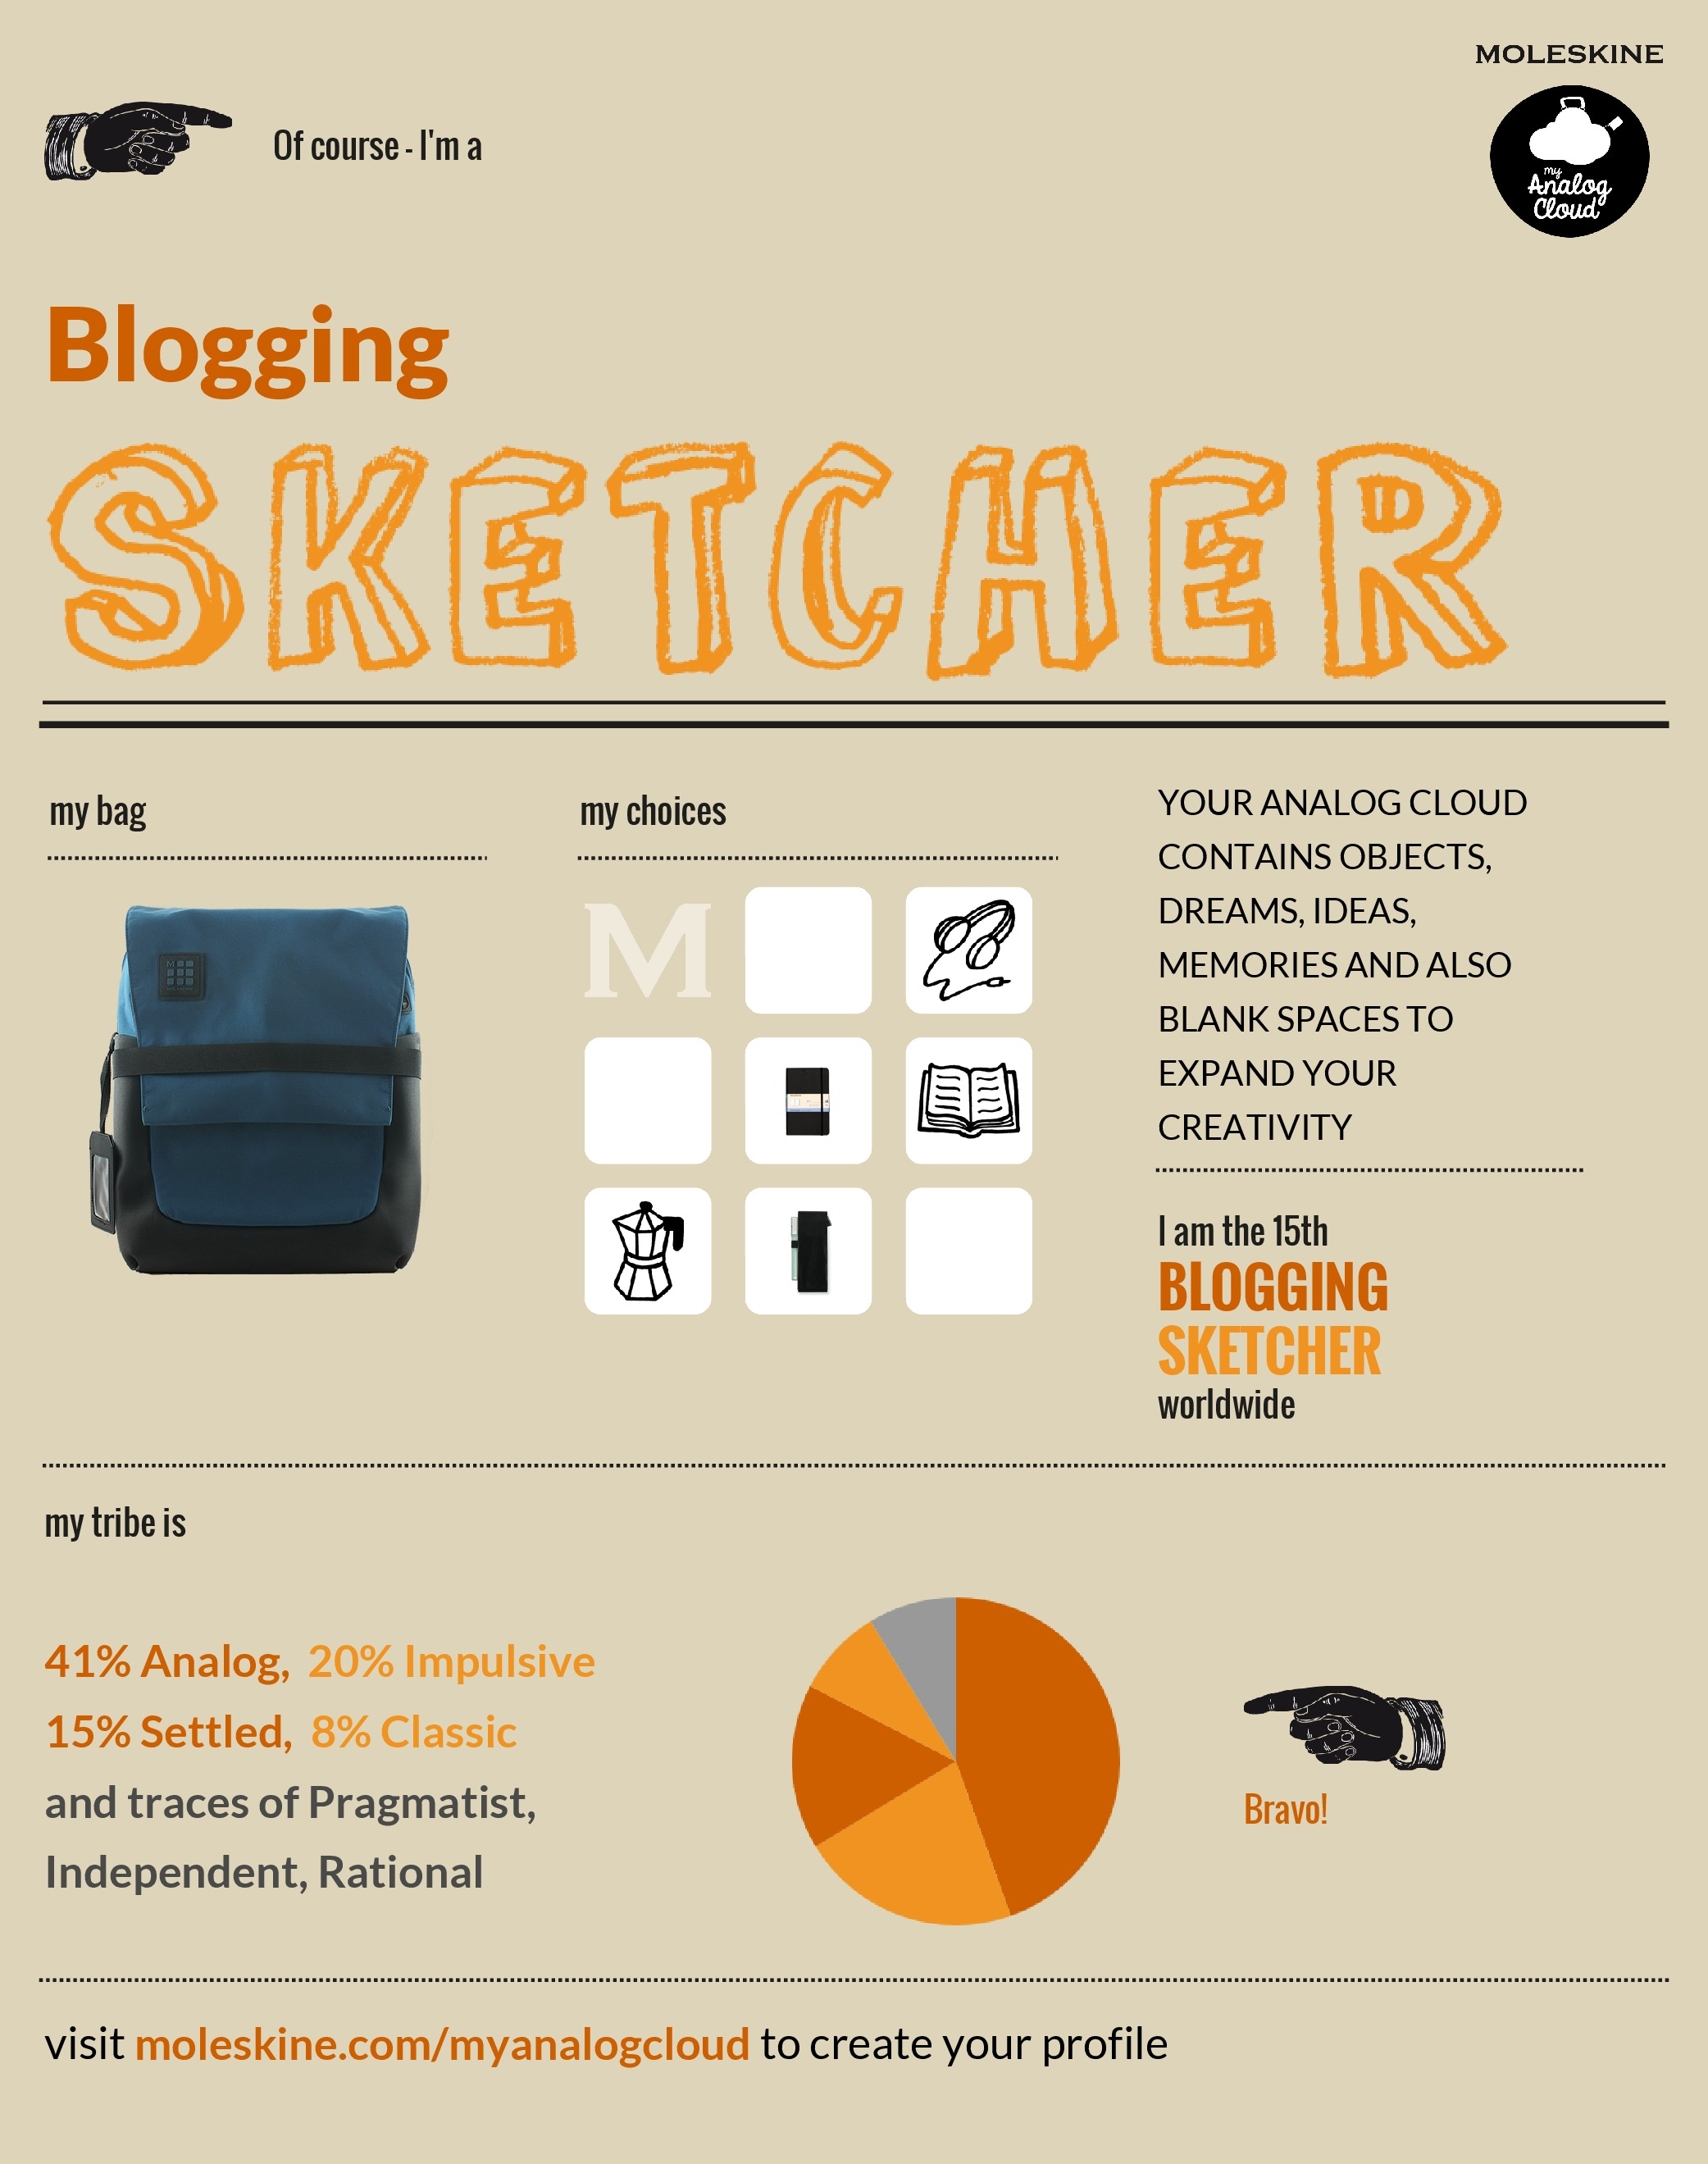 Blogging Sketcher. I'm not at all surprised. :)